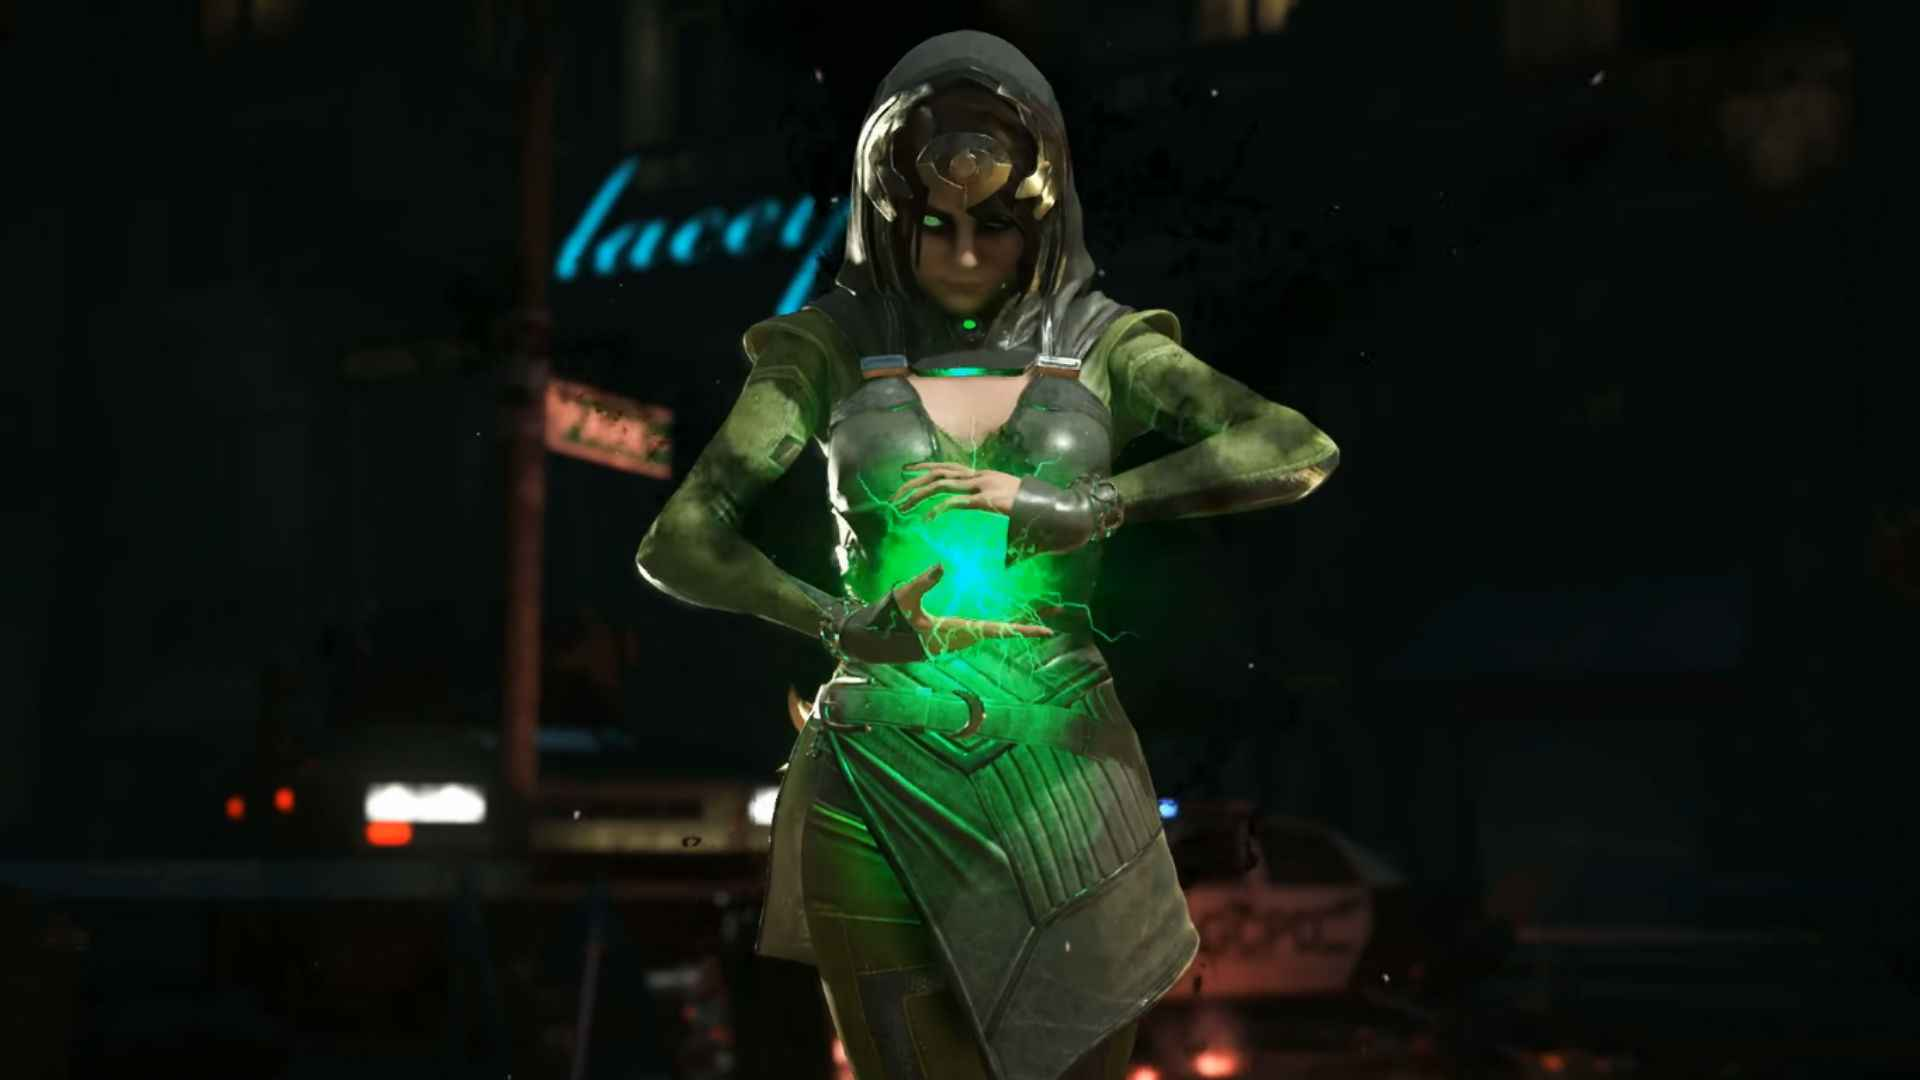 Injustice 2 Enchantress Release Goes Live On PS4 And Xbox